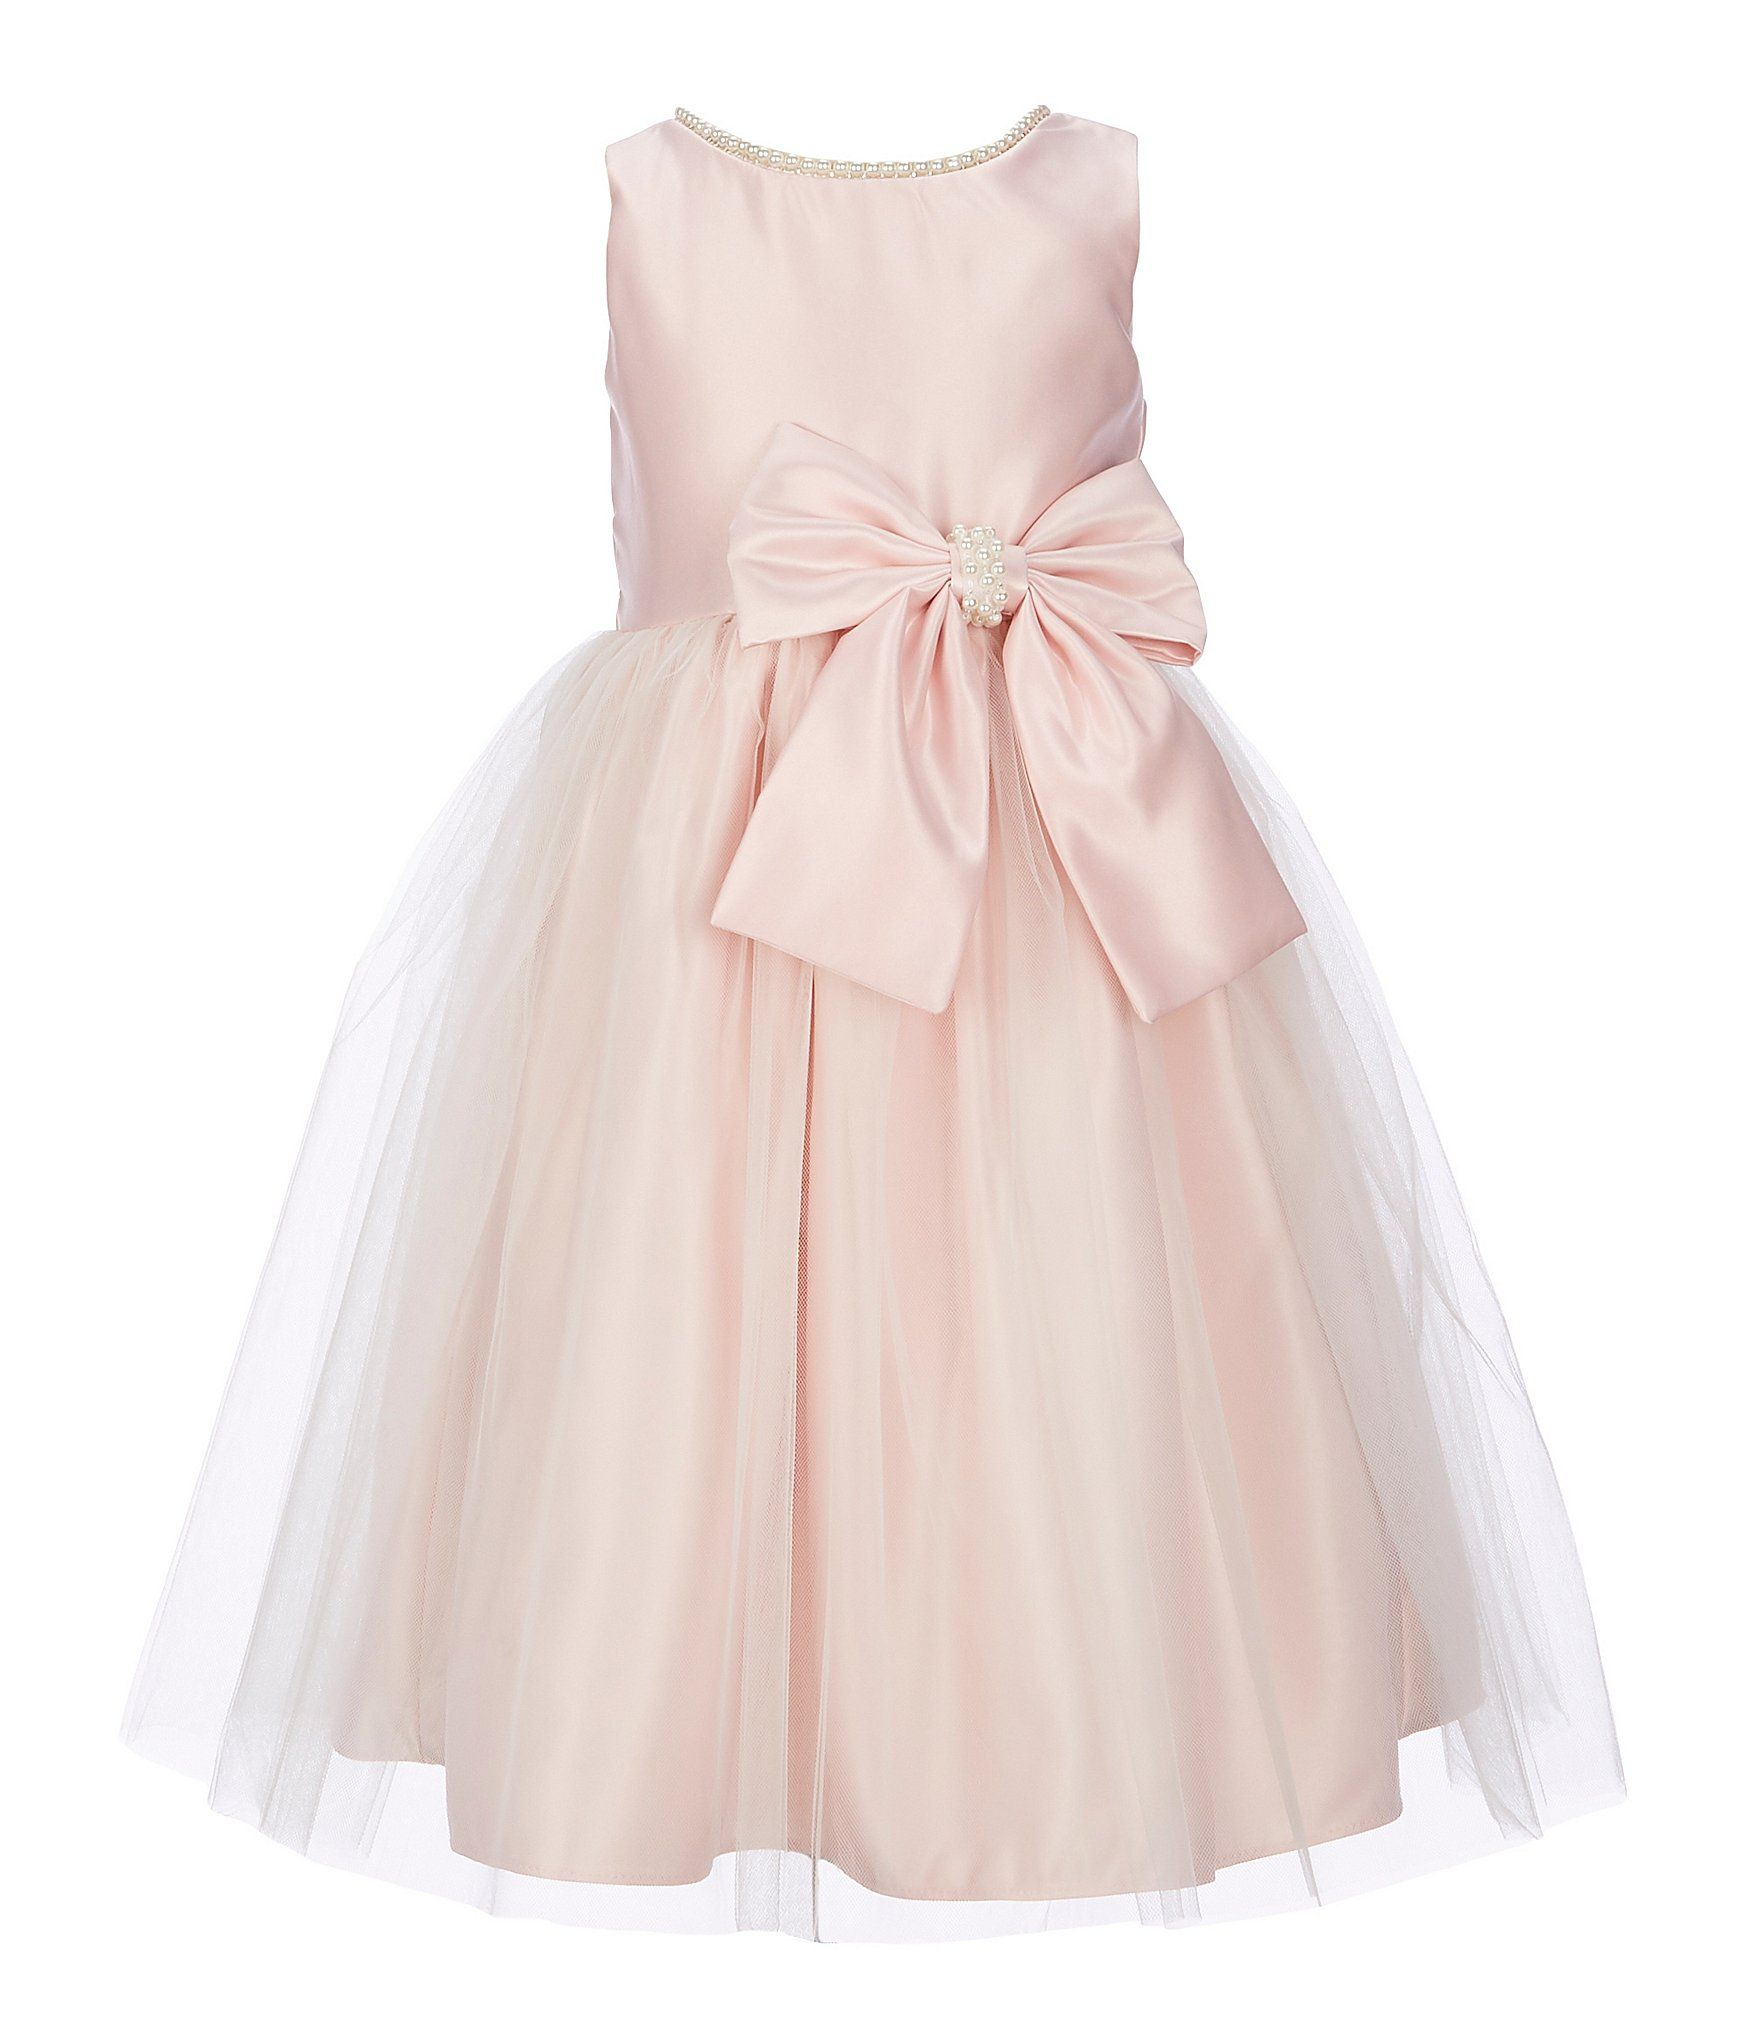 New Flower Girls Pink Satin Tulle Pleated Dress Wedding Easter Christmas 711